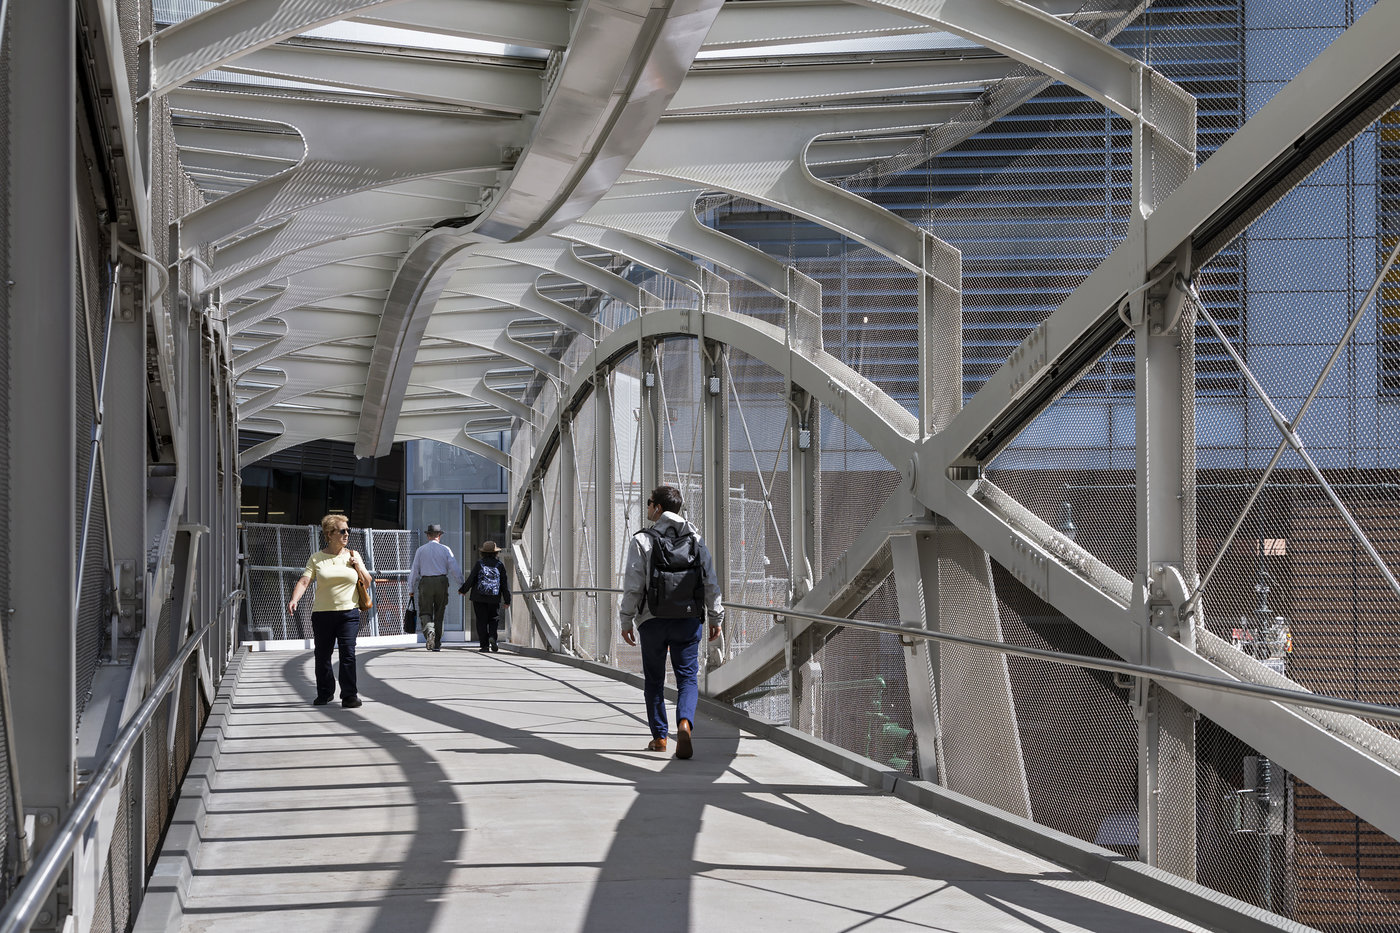 West Thames Pedestrian Bridge